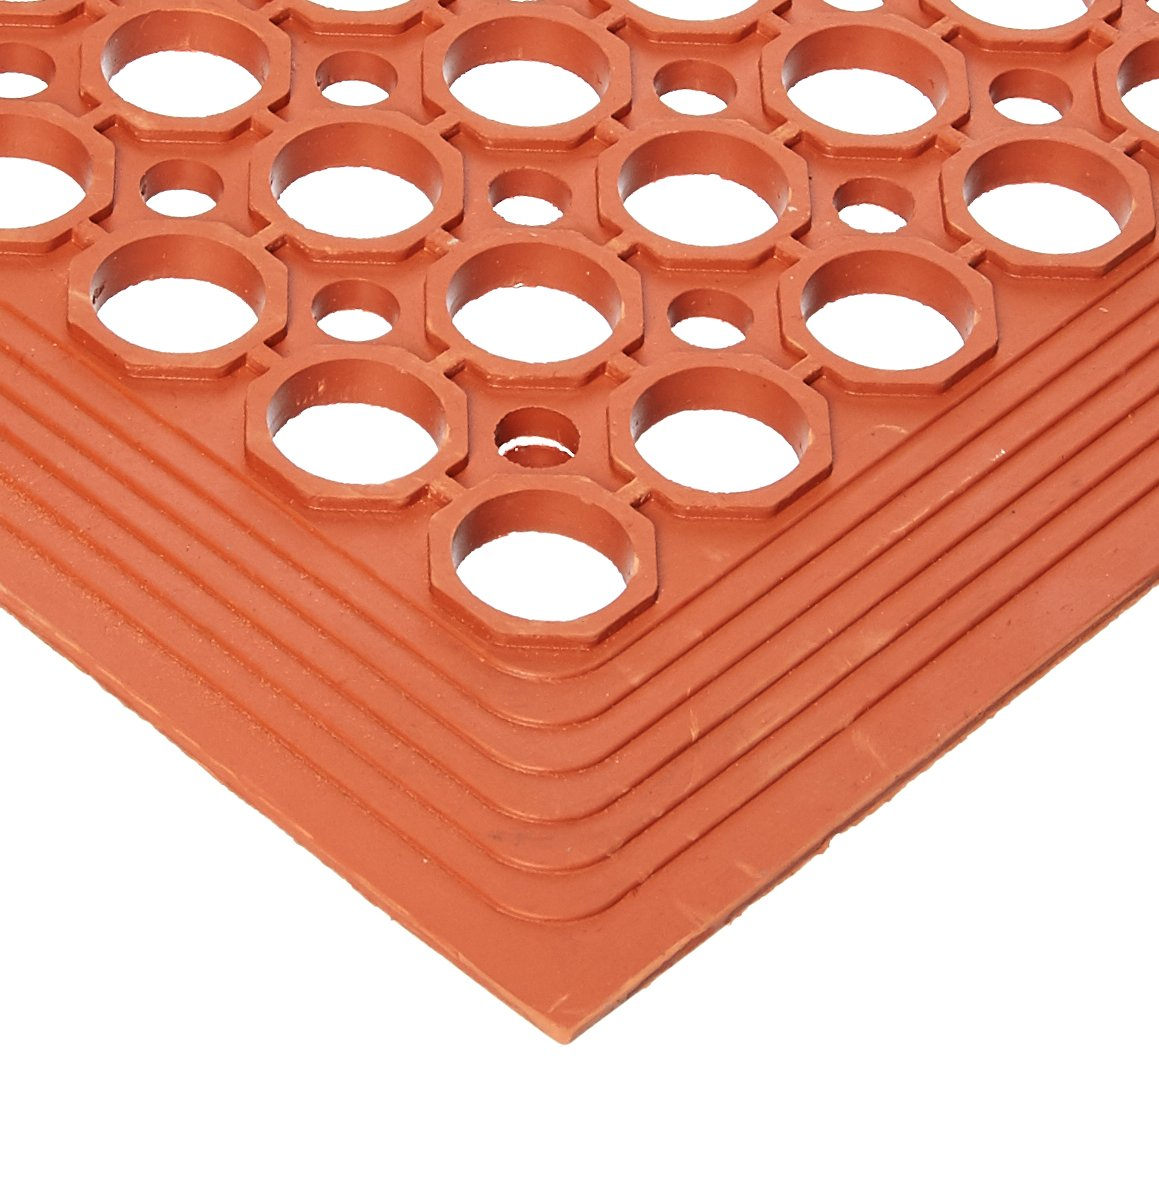 Winco RBM-35R Anti-Fatigue Floor Mat, 3-Feet by 5-Feet by 1/2-Inch, Grease-Resistant Red